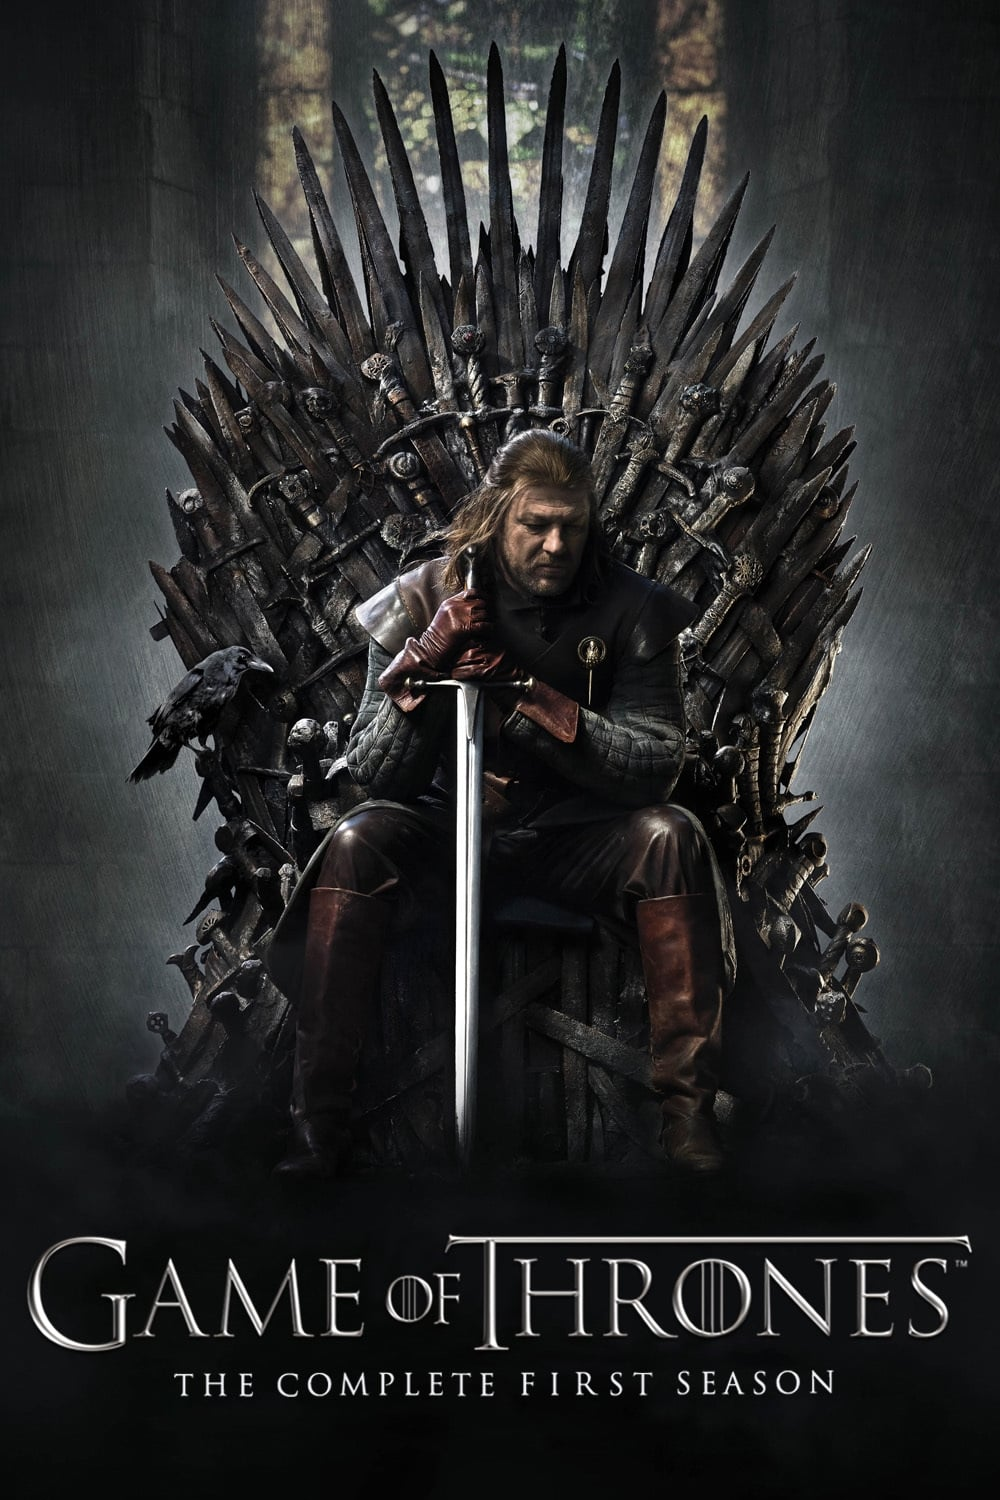 http://arkadascasohbet.com/game-of-thrones-1a-temporada-2011-bdrip-bluray-720p-torrent-dual-audio/